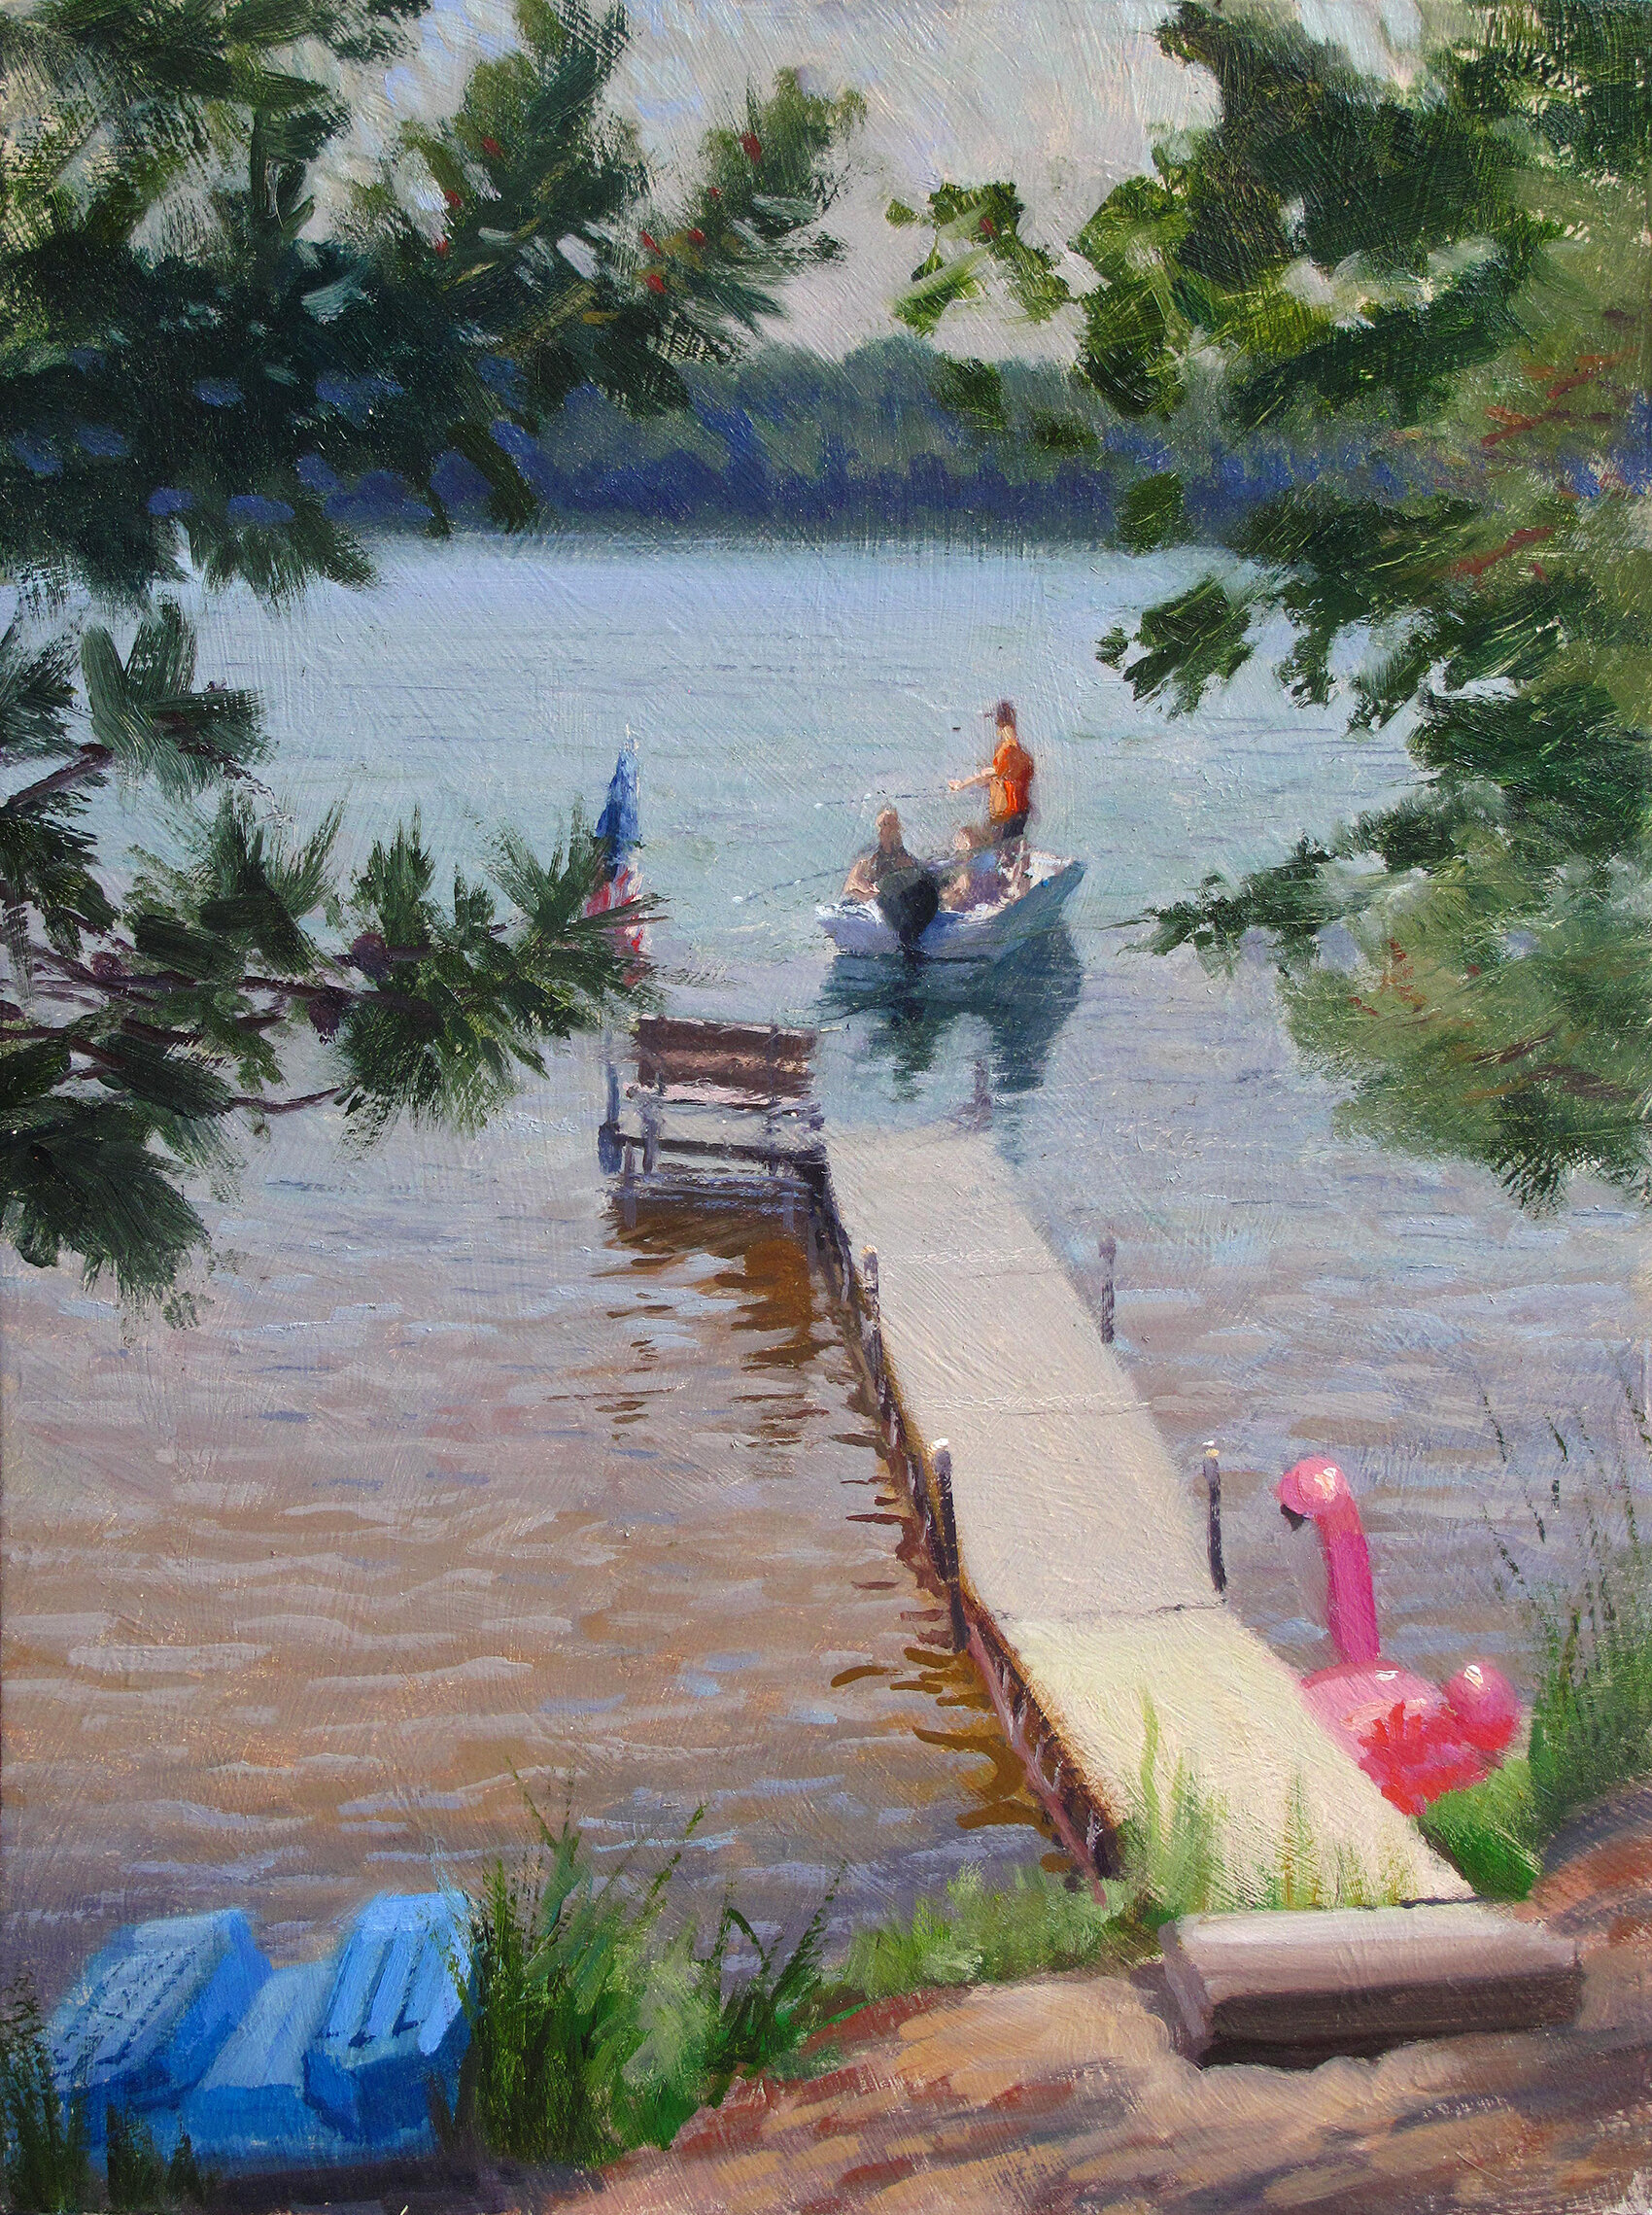 4th of July    16 x 12 oil on panel  Painted on location in the Danbury area in Wisconsin. If there are brightly-colored inflatables around, I'll paint 'em. This swan in the lower right allowed me to pull out the Quinacridone Magenta. If I put that crazy stuff is on my palette there may be trouble a-brewin'. This day I demonstrated some rare restraint.